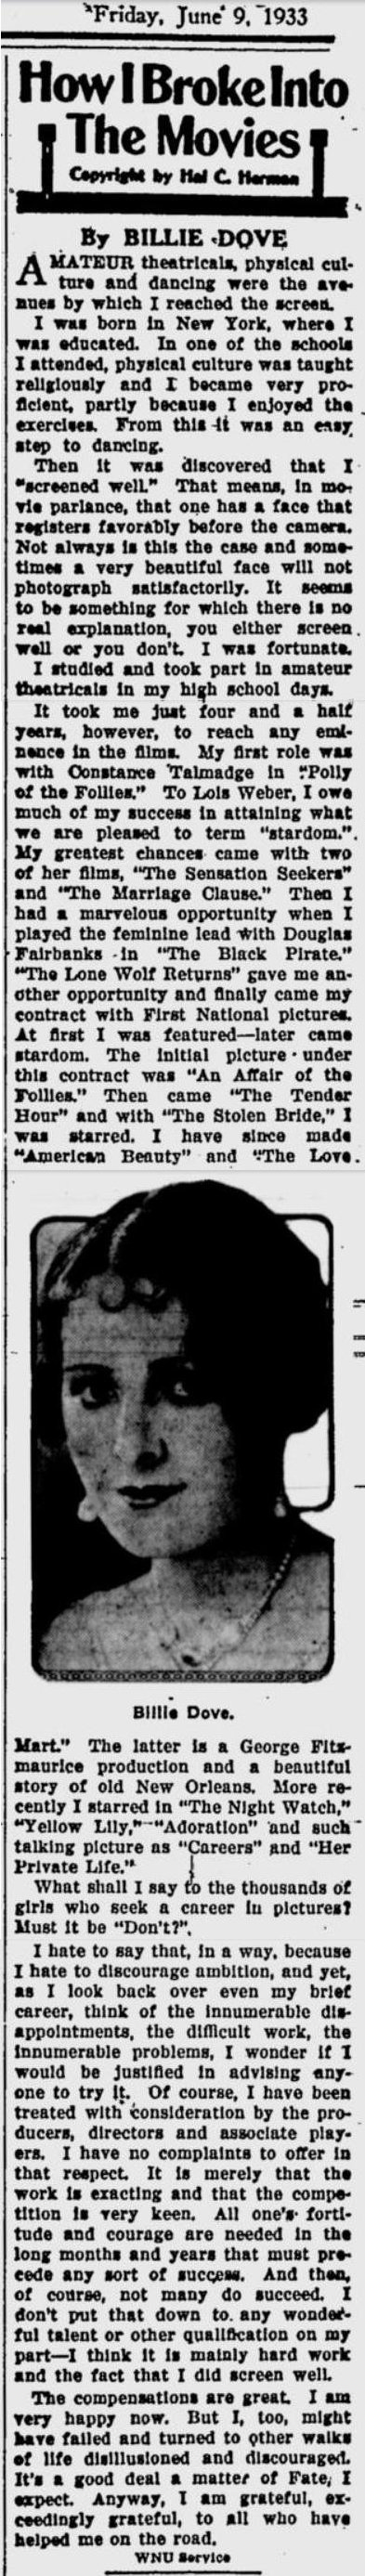 Billie Dove article